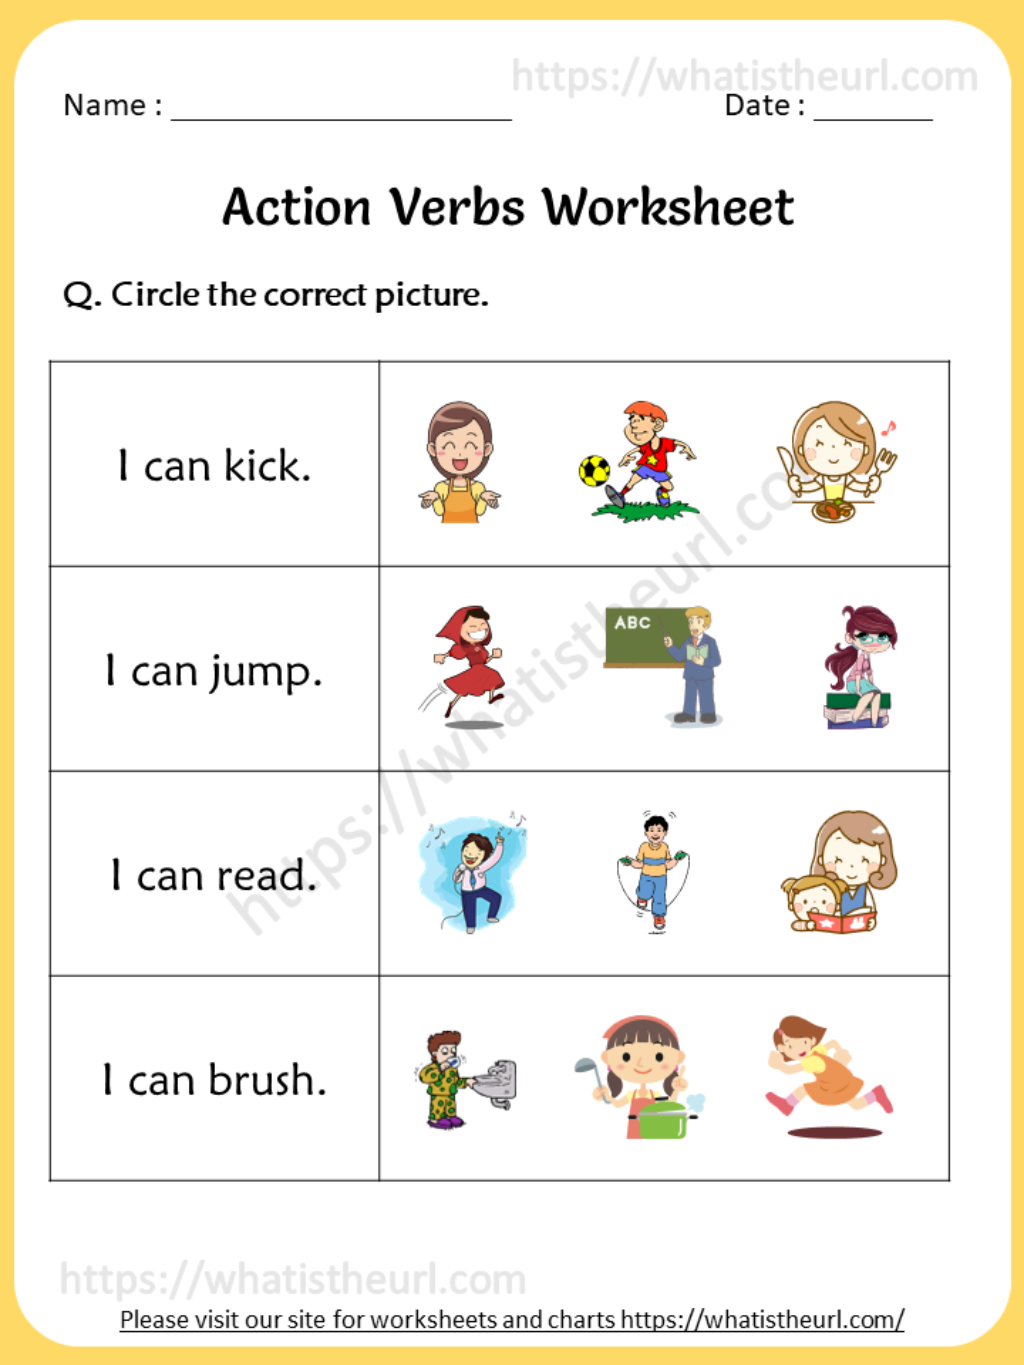 Action Verbs Worksheet For 1st Grade